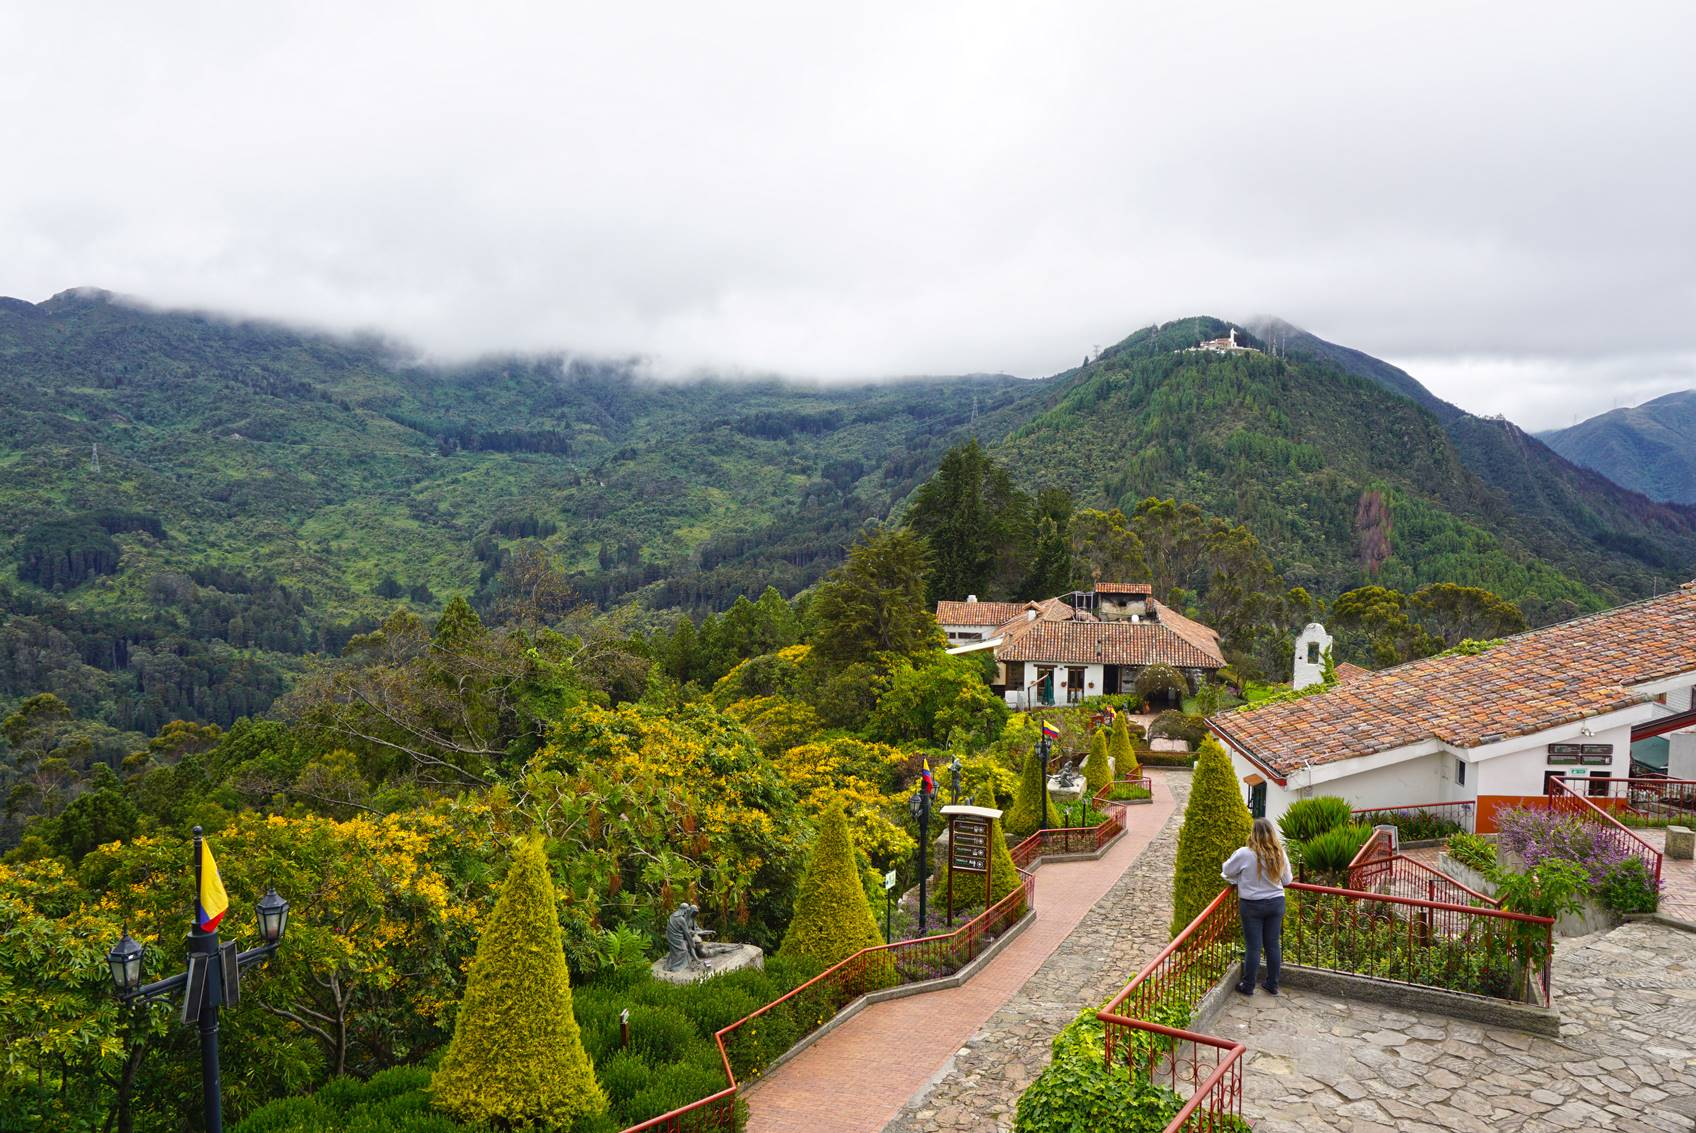 Monserrate mountain above Bogota, Colombia